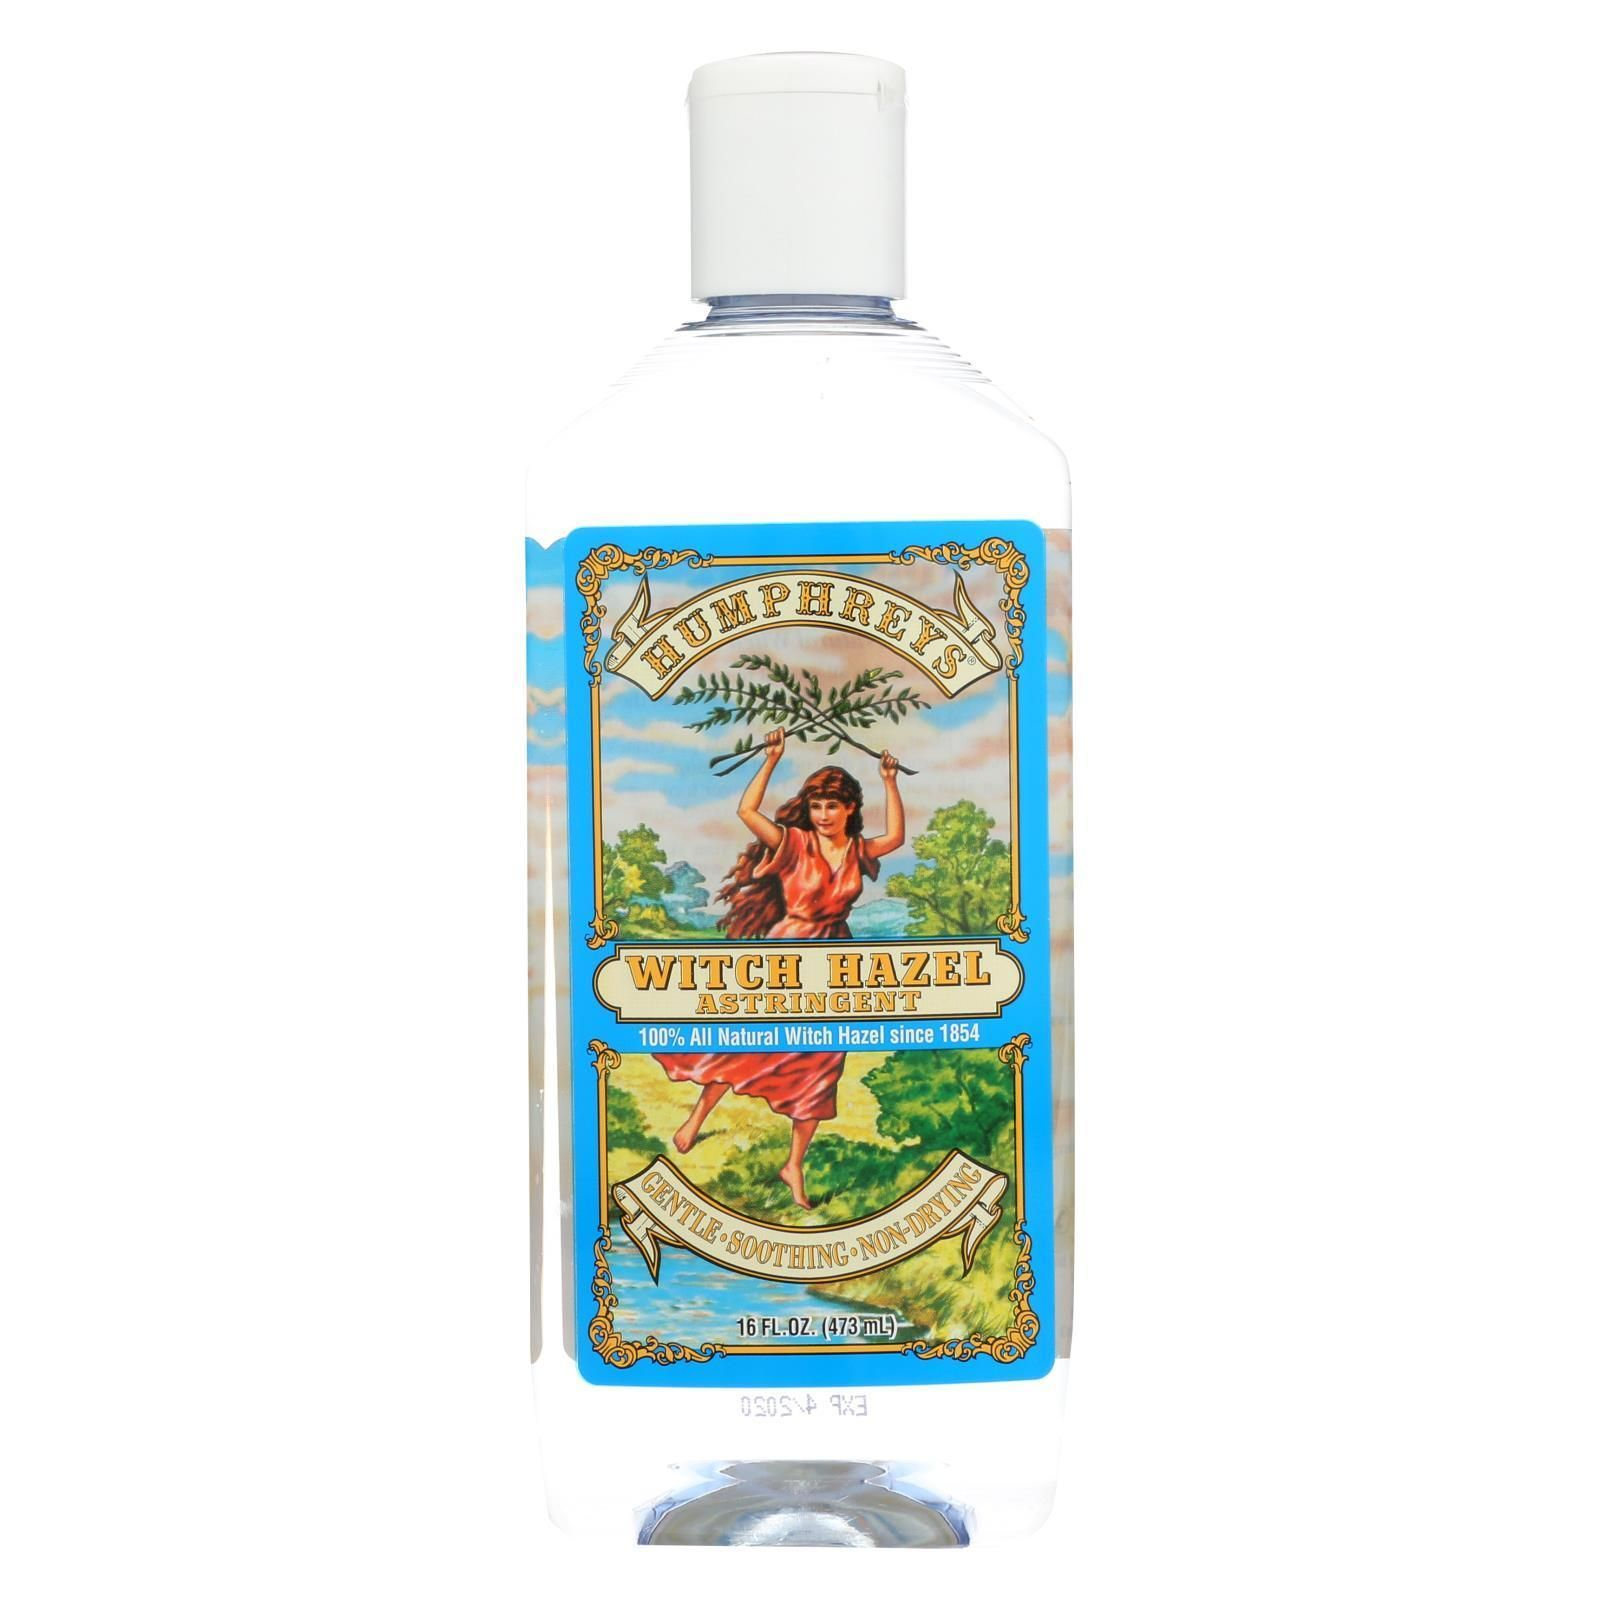 Humphrey's Homeopathic Remedy Witch Hazel Astringent 16